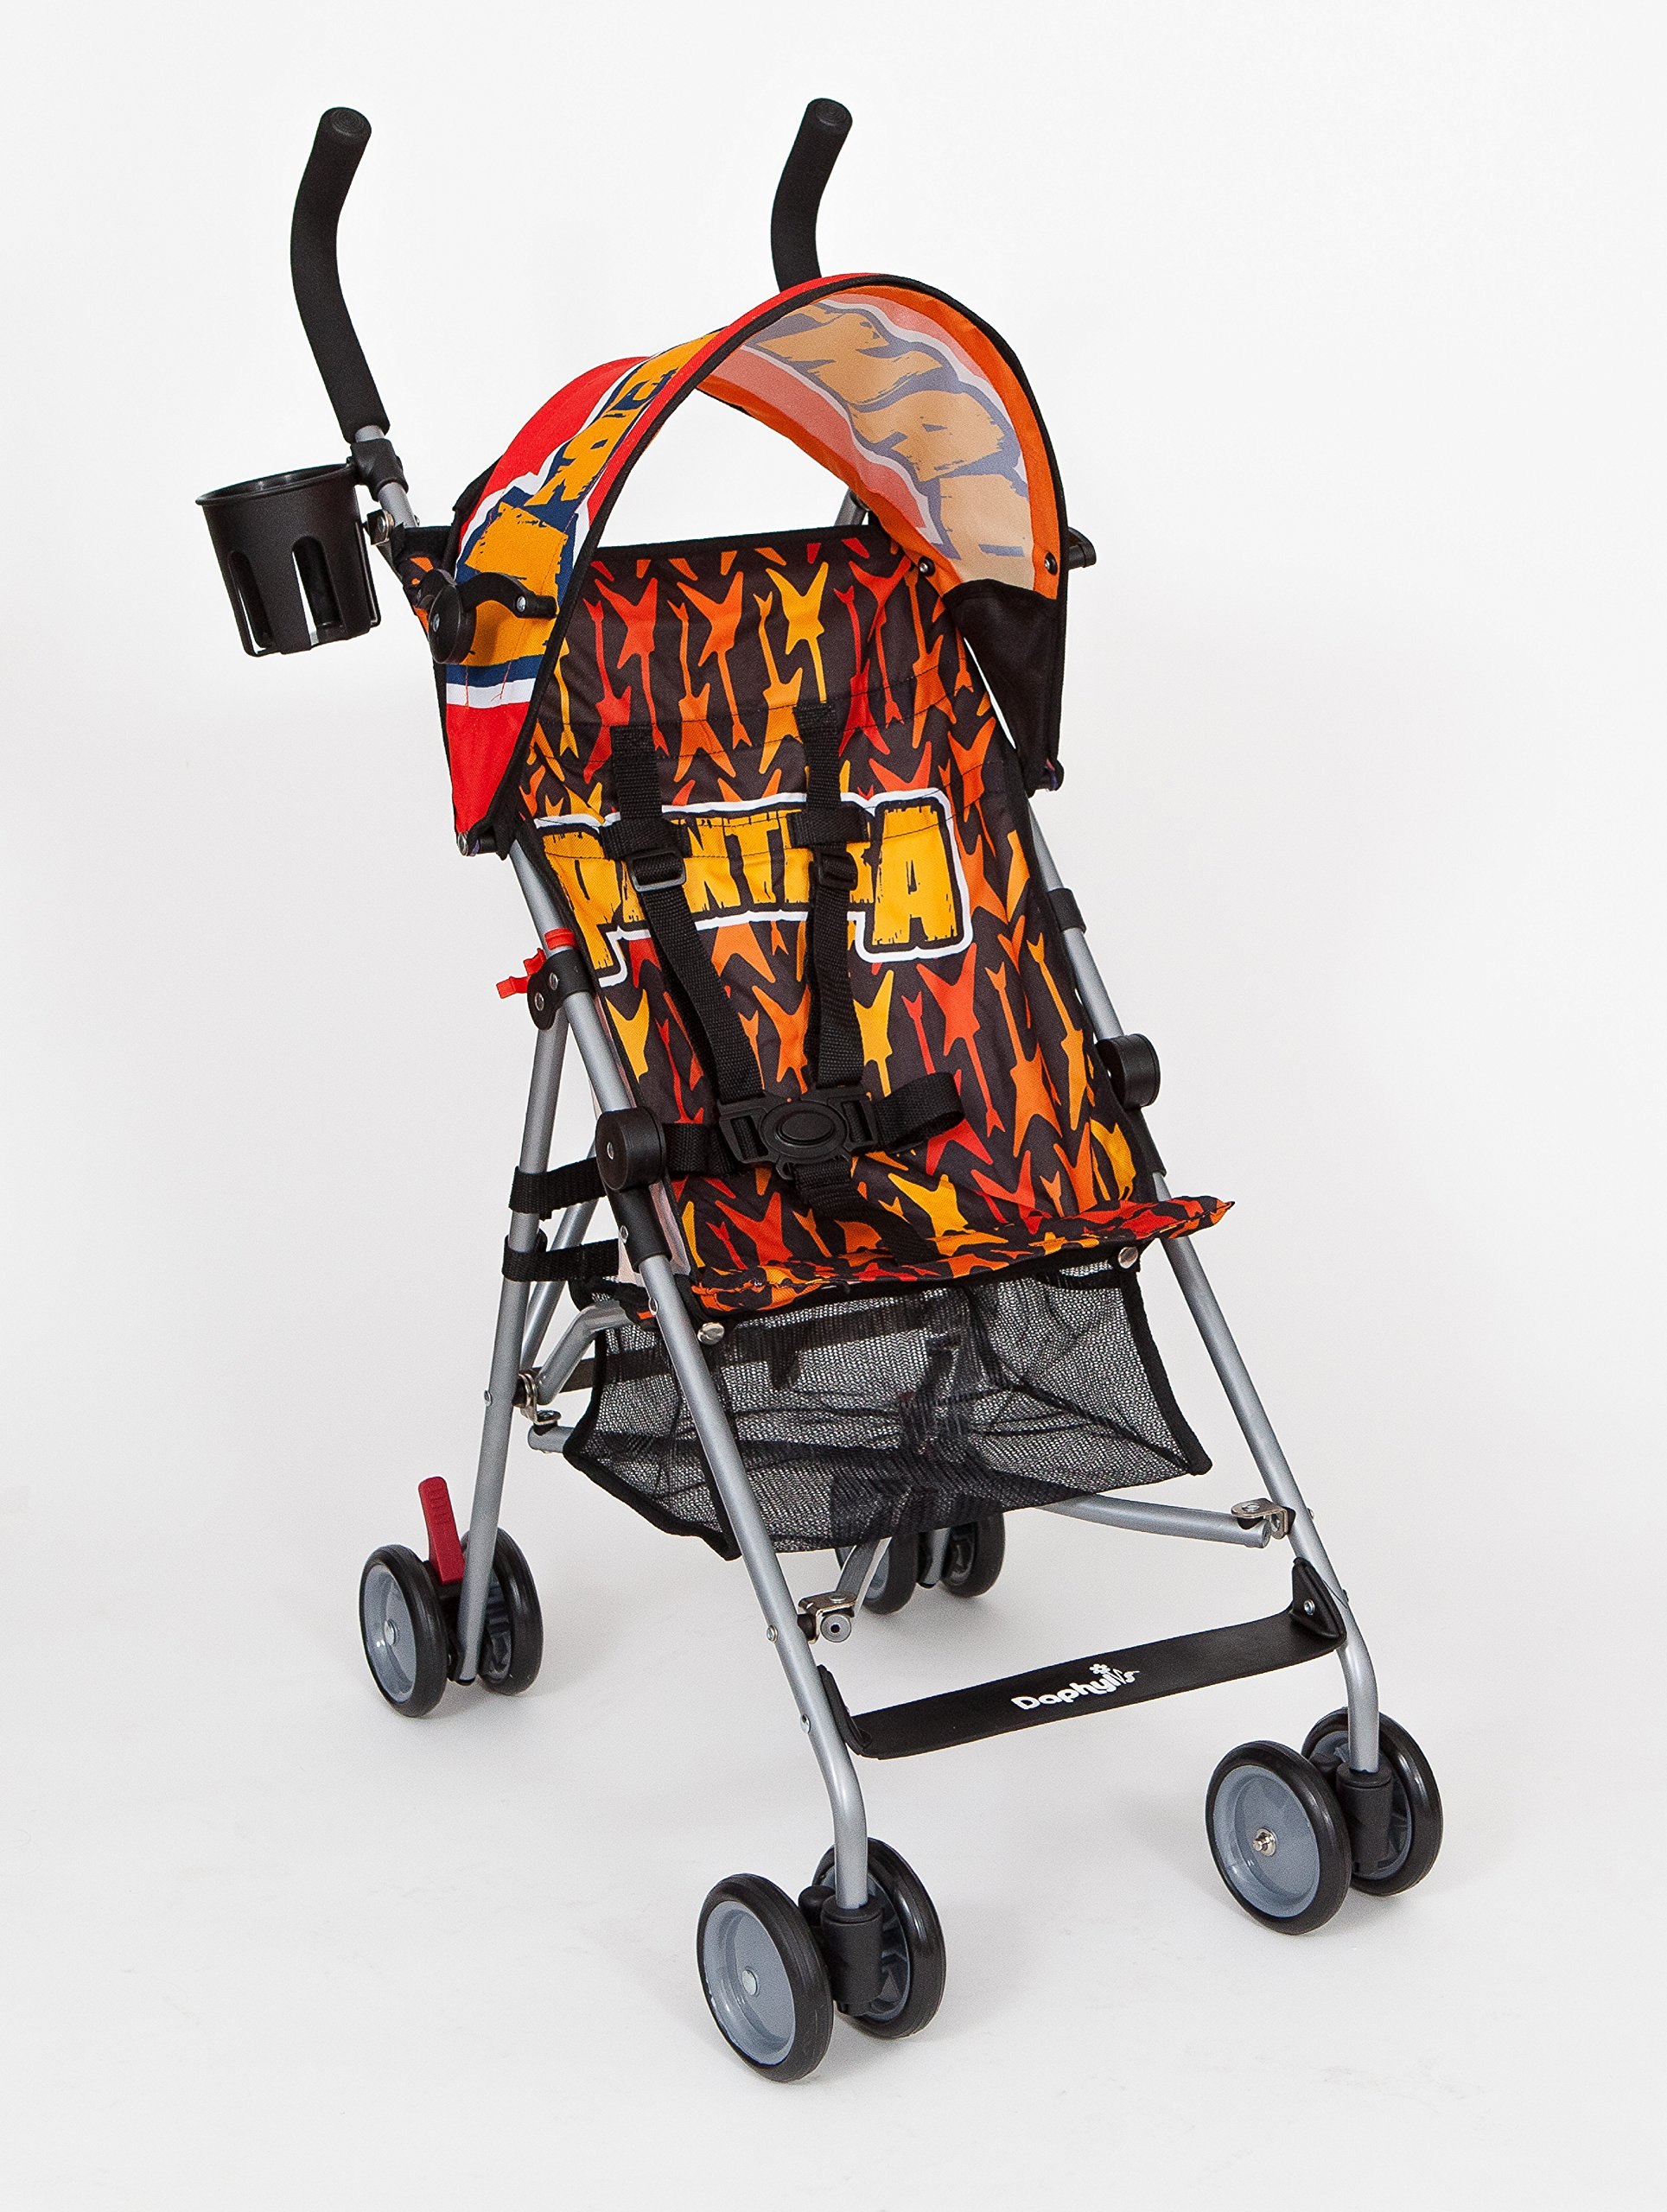 Pantera ultralight Umbrella Stroller